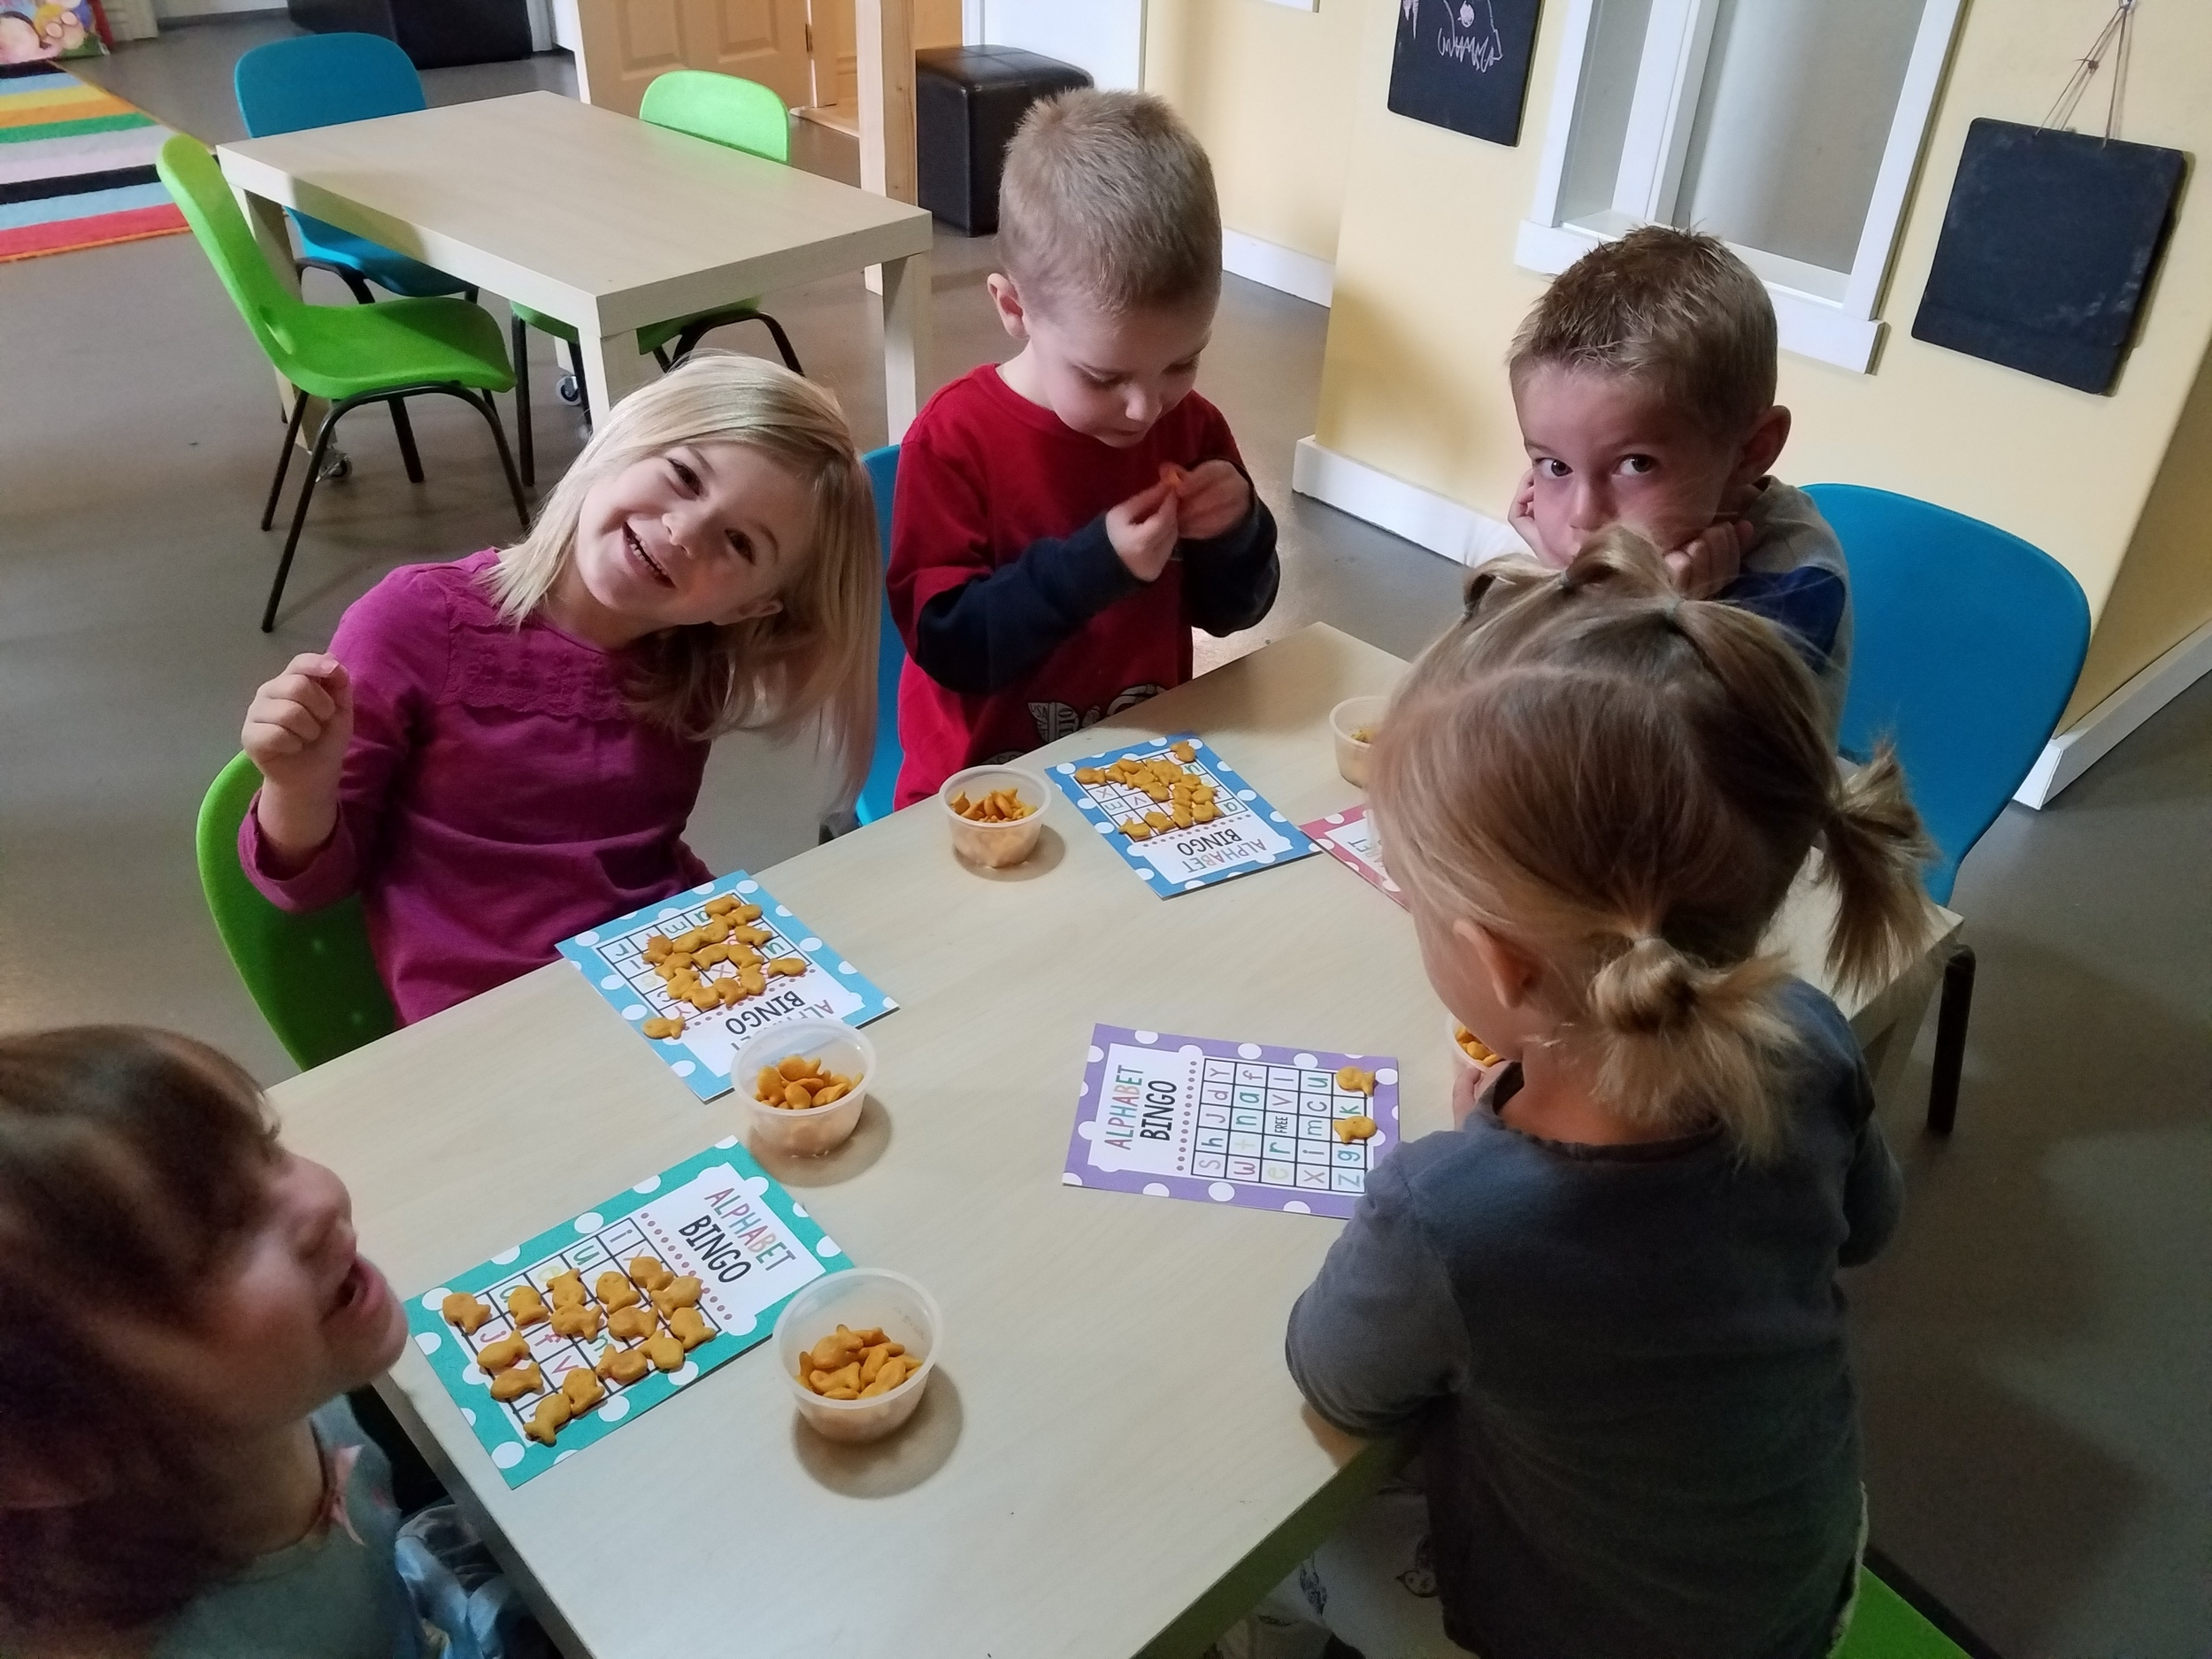 Playing Alphabet Bingo at snack time!